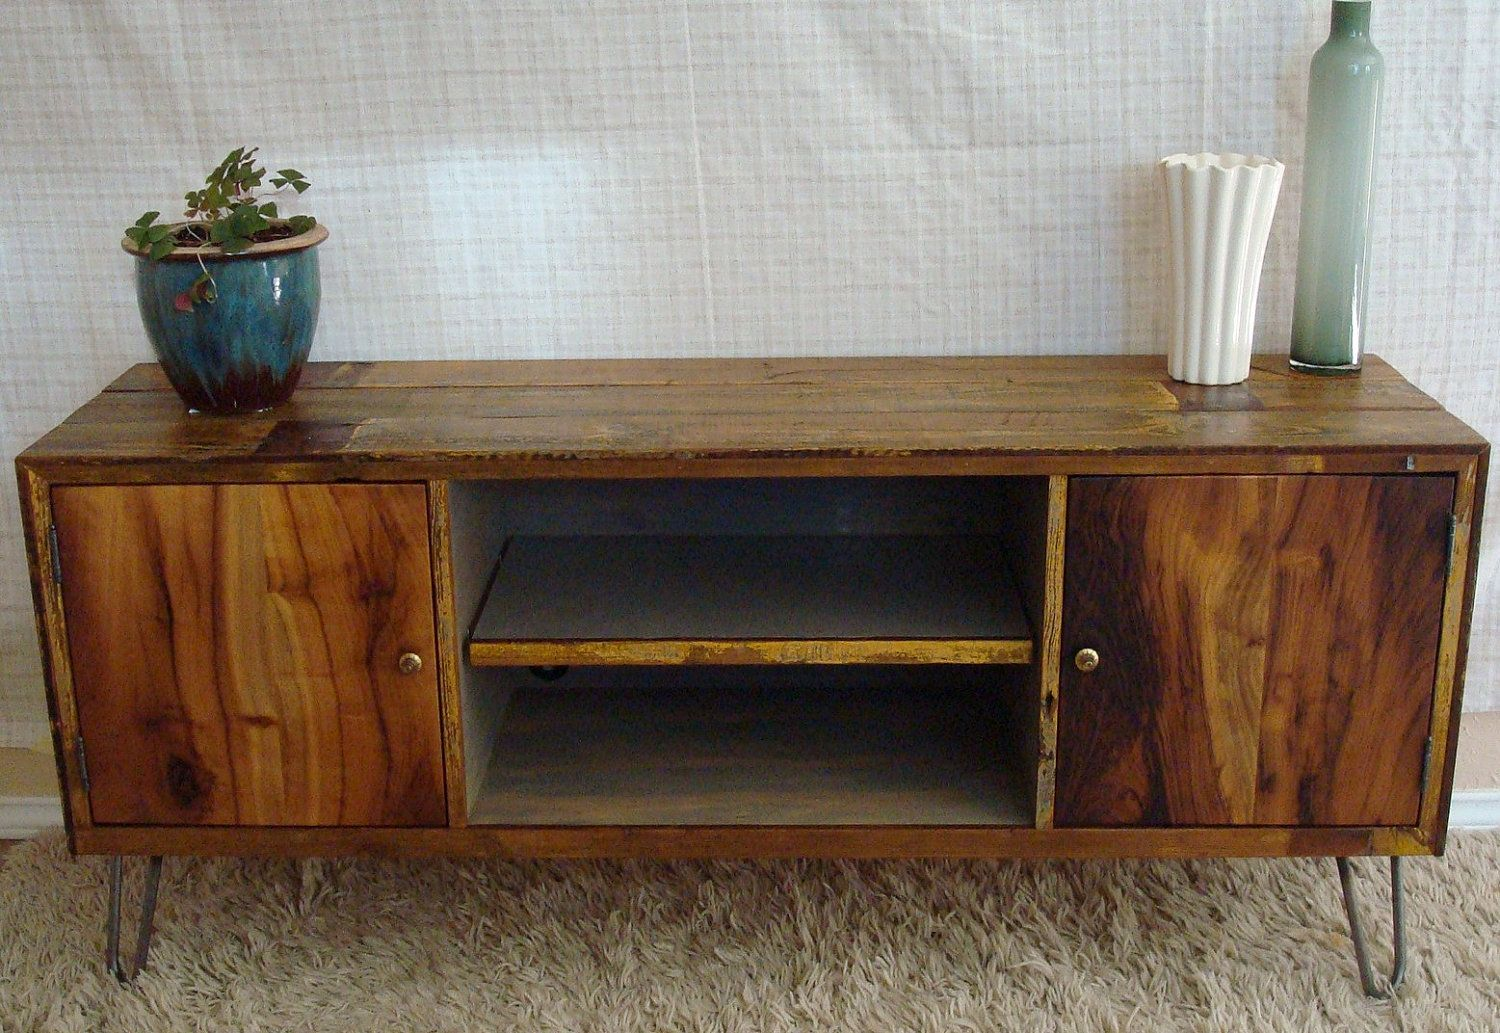 Rustic Reclaimed Mid Century Inspired Entertainment Center Tv Stand Made To Order 1 700 00 Via Etsy